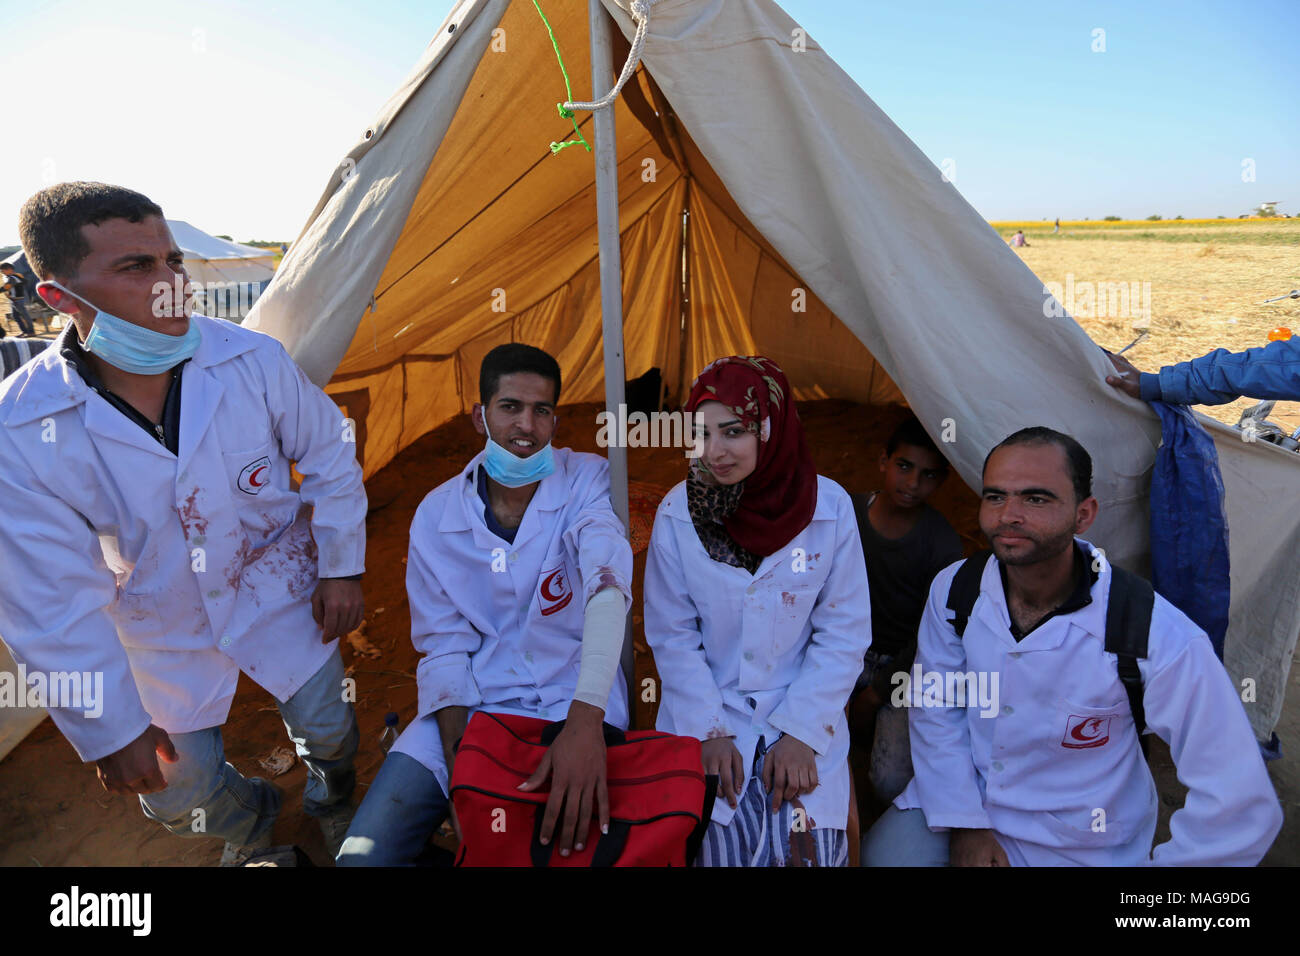 Khan Younis, Gaza Strip, Palestinian Territory. 1st Apr, 2018. Palestinian medical Razan al-Najjar and her comrades sit next to medical tent during clashes with Israeli security forces in a protest, at the Israel-Gaza border, demanding the right to return to their homeland, in Khan Younis in the southern Gaza strip on April 1, 2018 Credit: Ashraf Amra/APA Images/ZUMA Wire/Alamy Live News - Stock Image